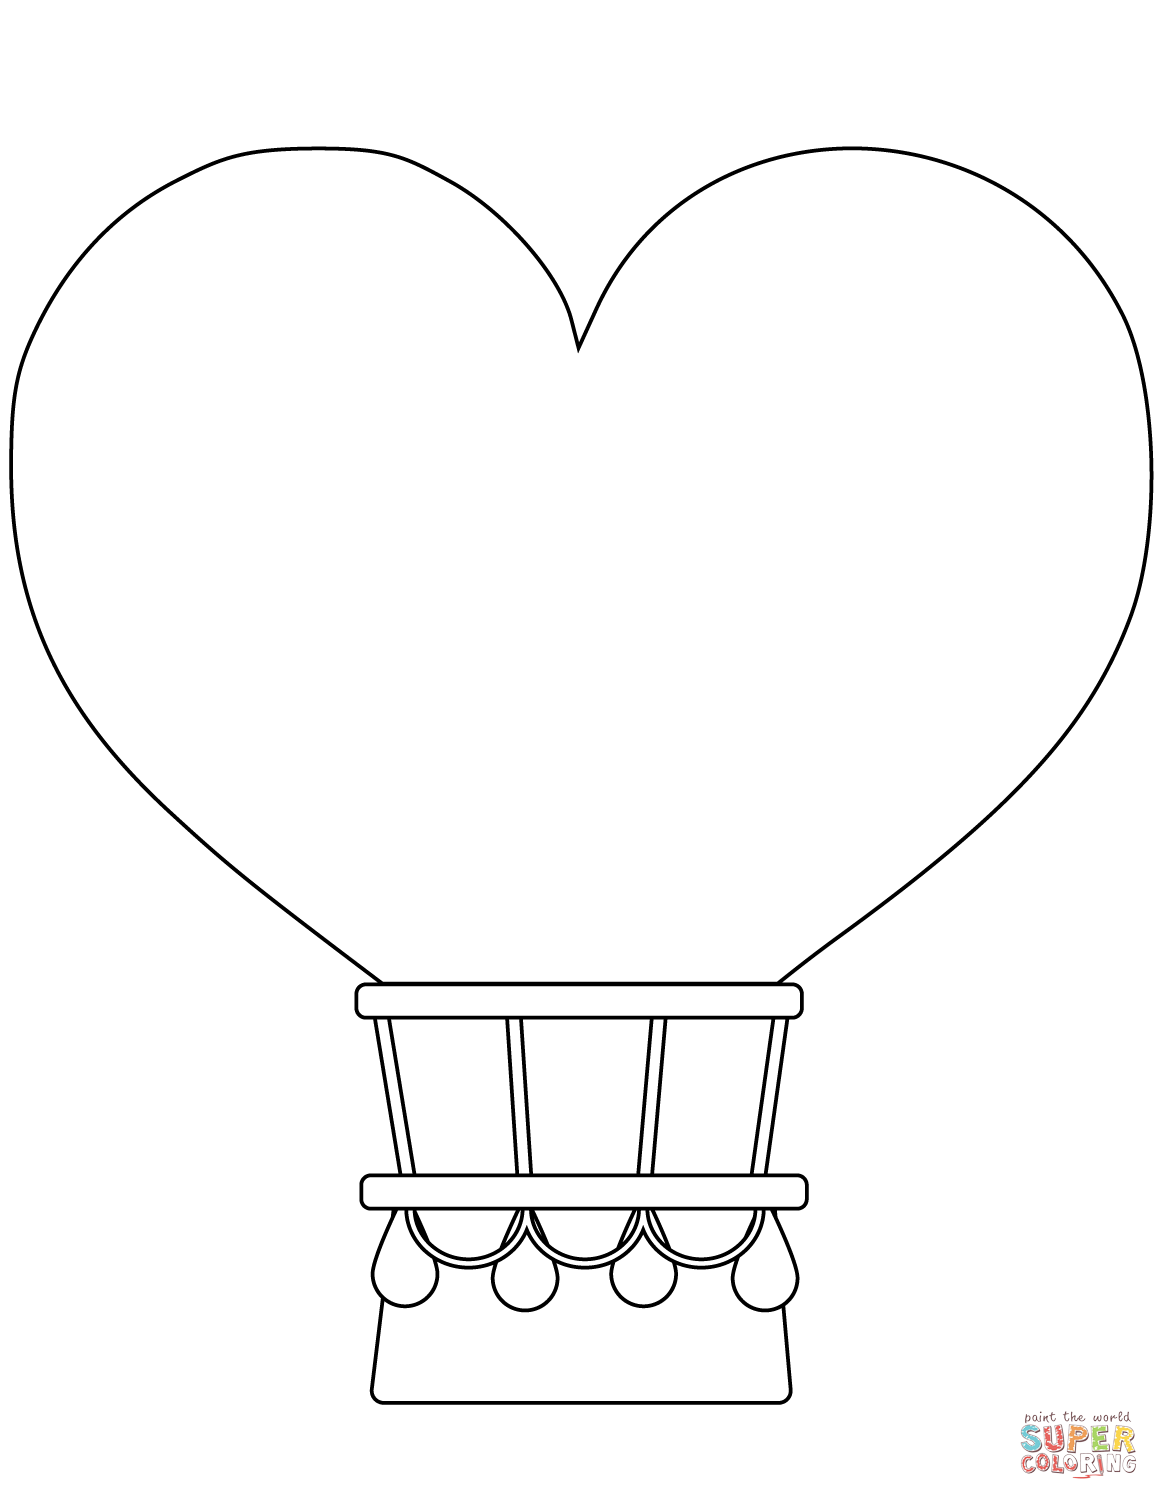 Heart Shaped Hot Air Balloon Coloring Page